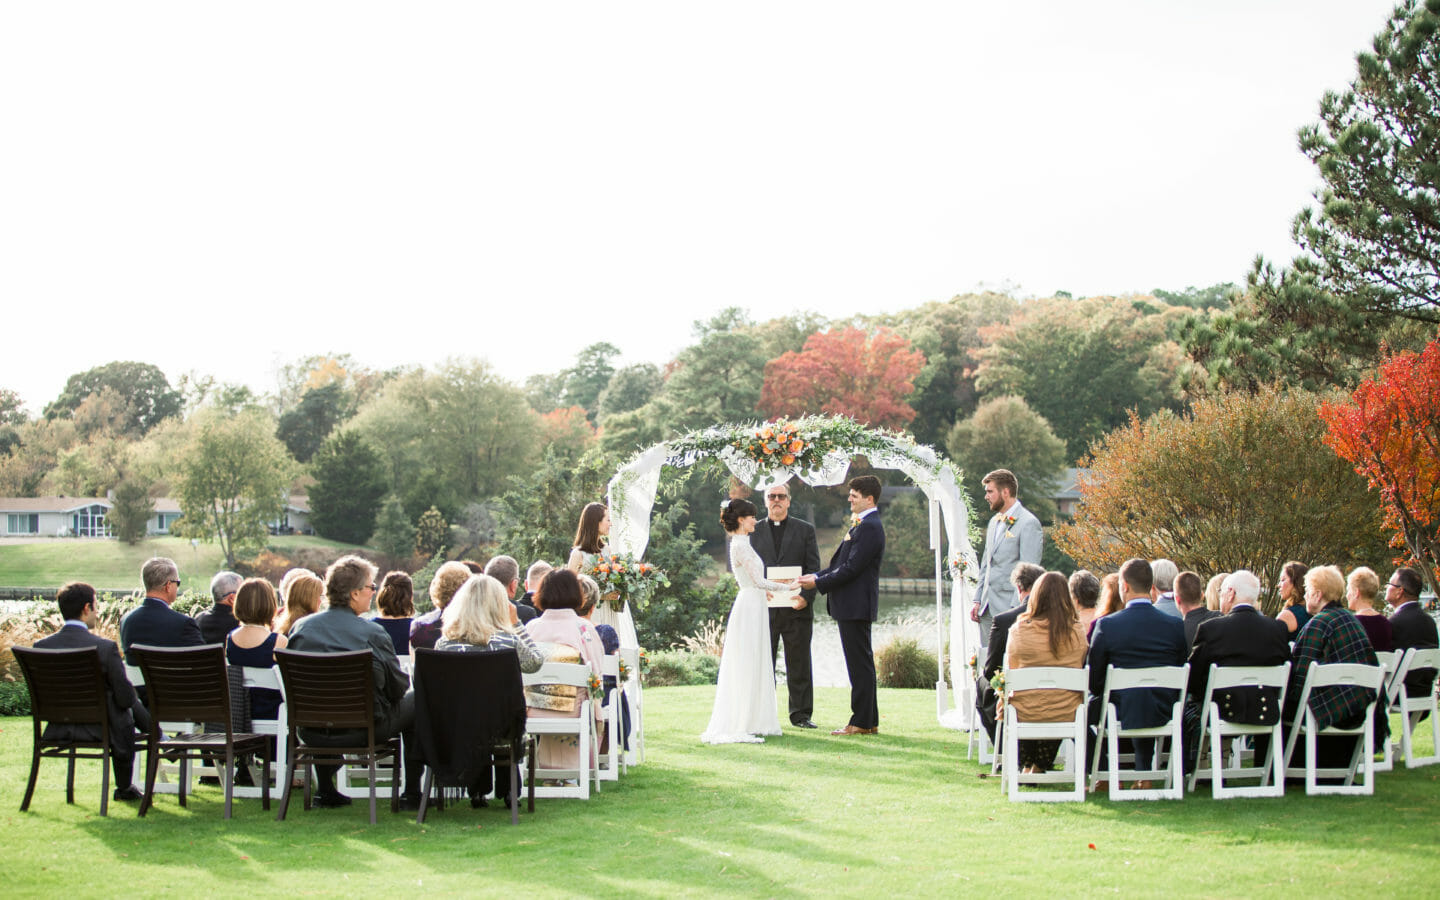 Chesapeake Bay Wedding Venues | Tides Inn